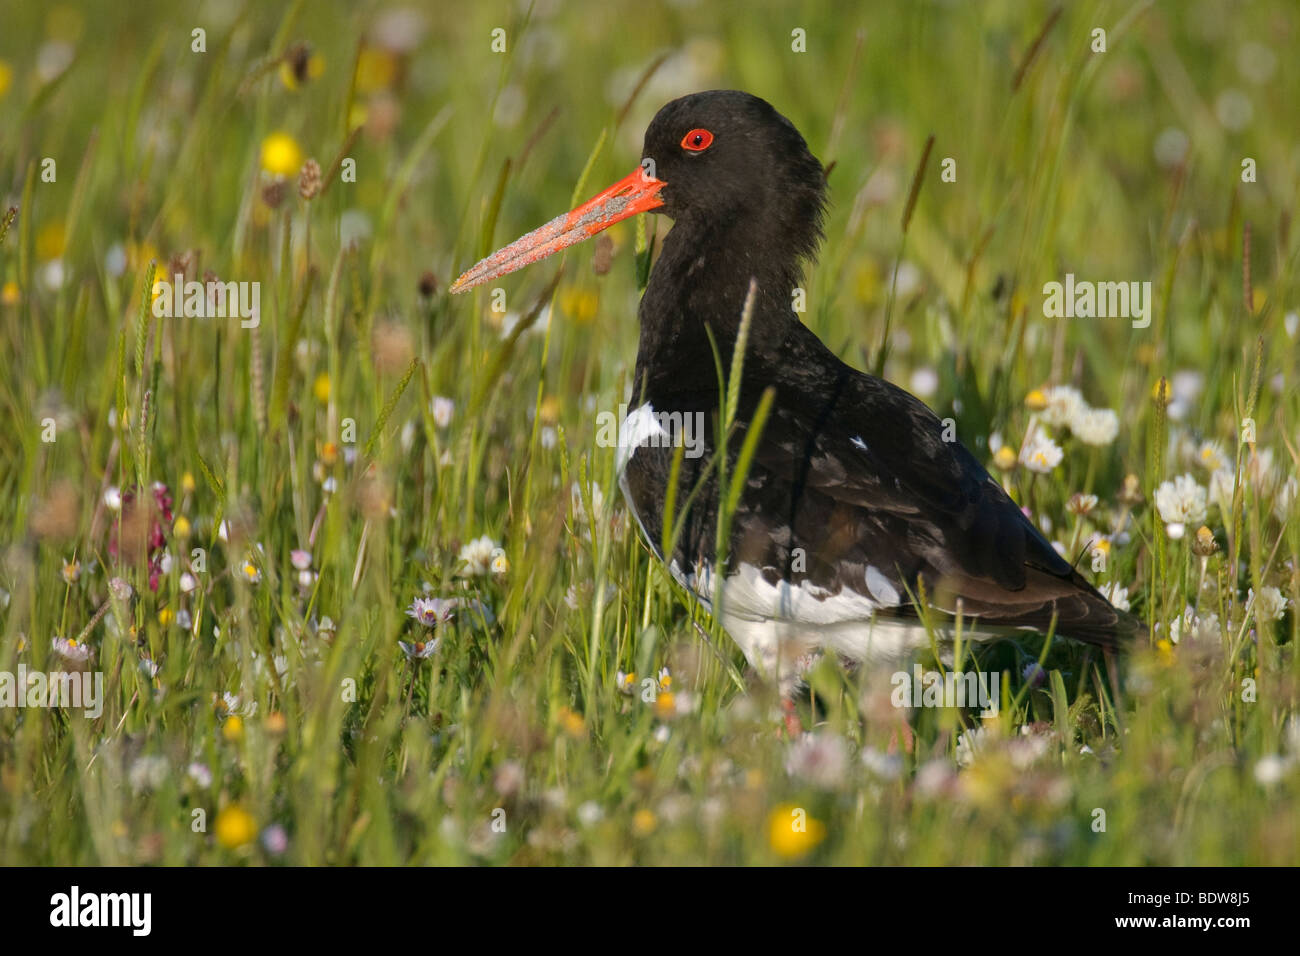 Oystercatcher Haematopus ostralegus in hay meadow. Island of South Uist, Western Isles, Scotland. - Stock Image